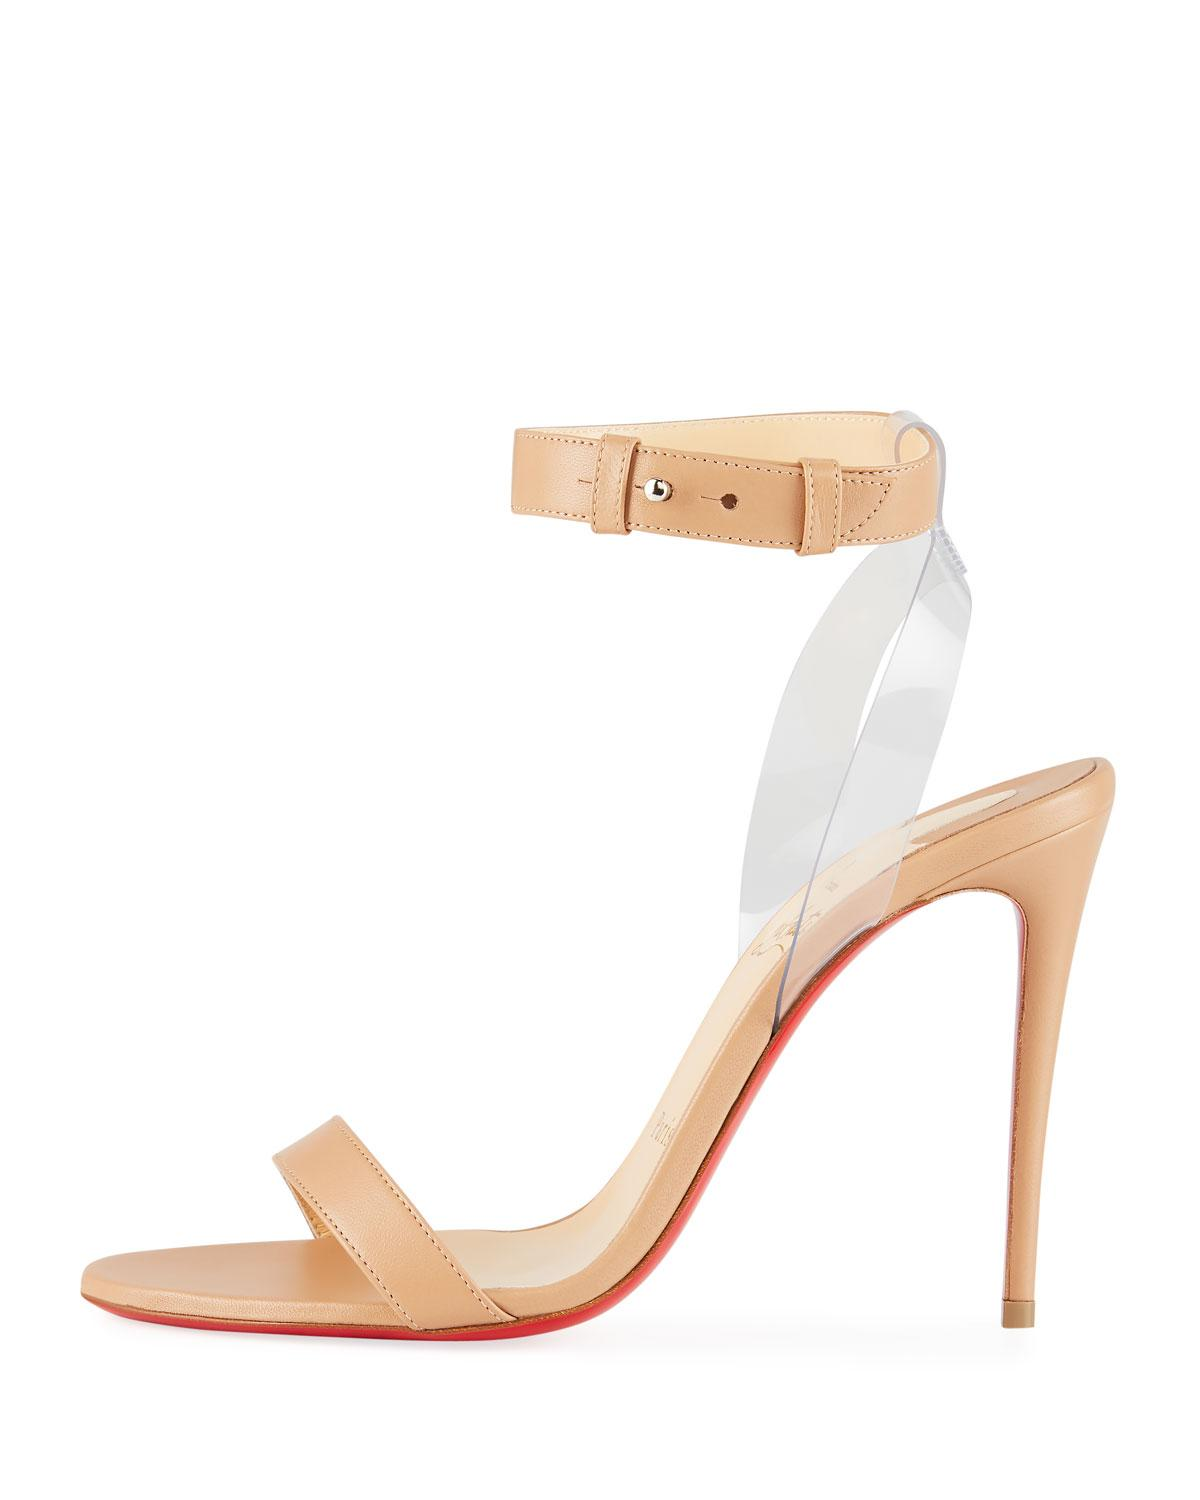 cdd9735dee9 Christian Louboutin Jonatina Illusion Ankle-strap Red Sole Sandals in  Natural - Lyst